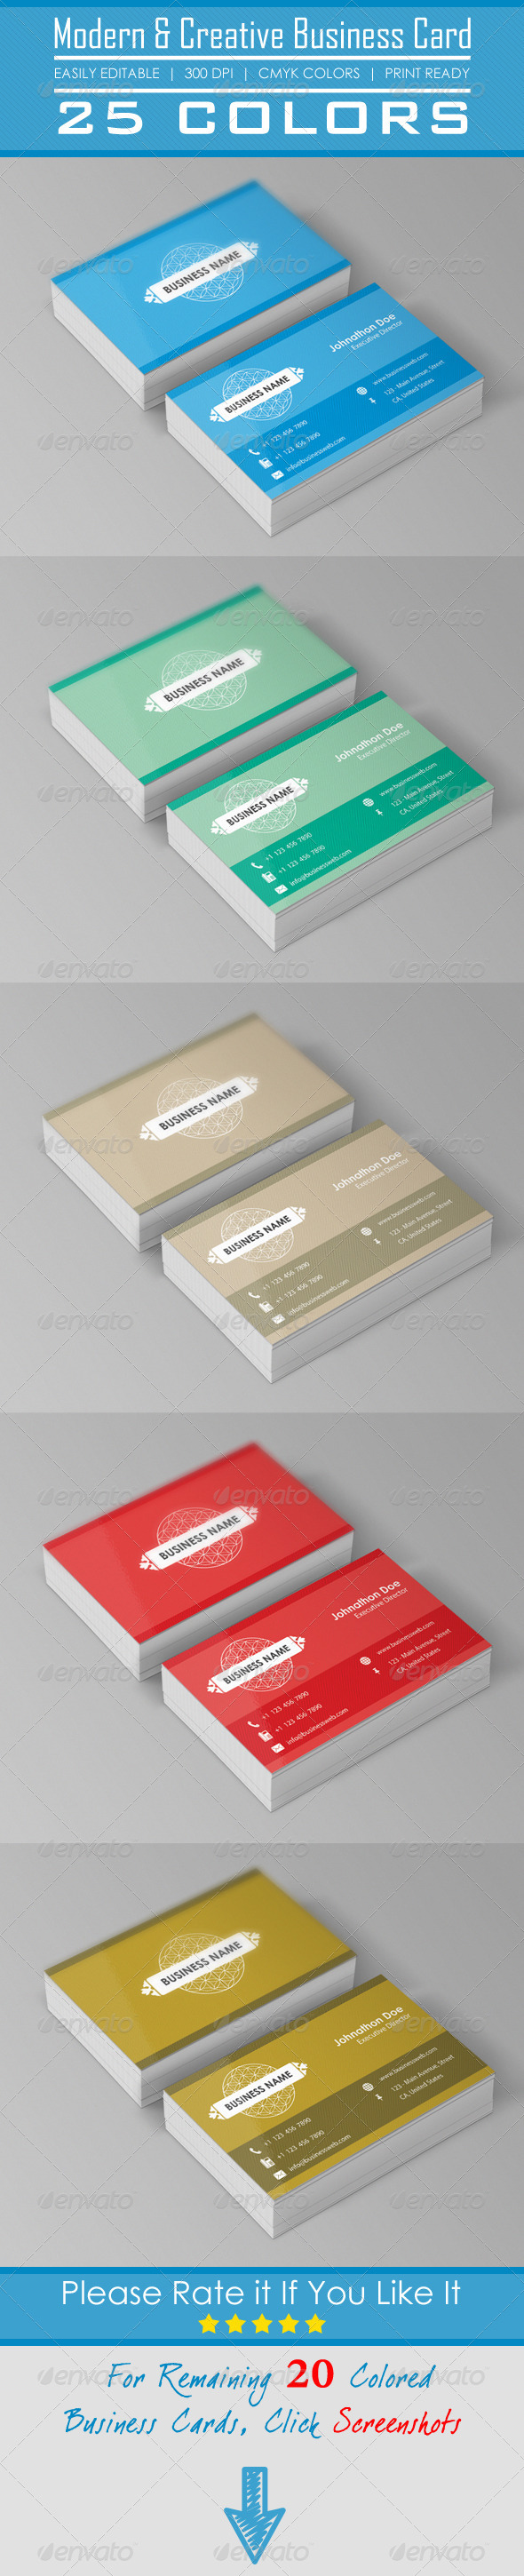 GraphicRiver Corporate & Creative Business Cards 5290667